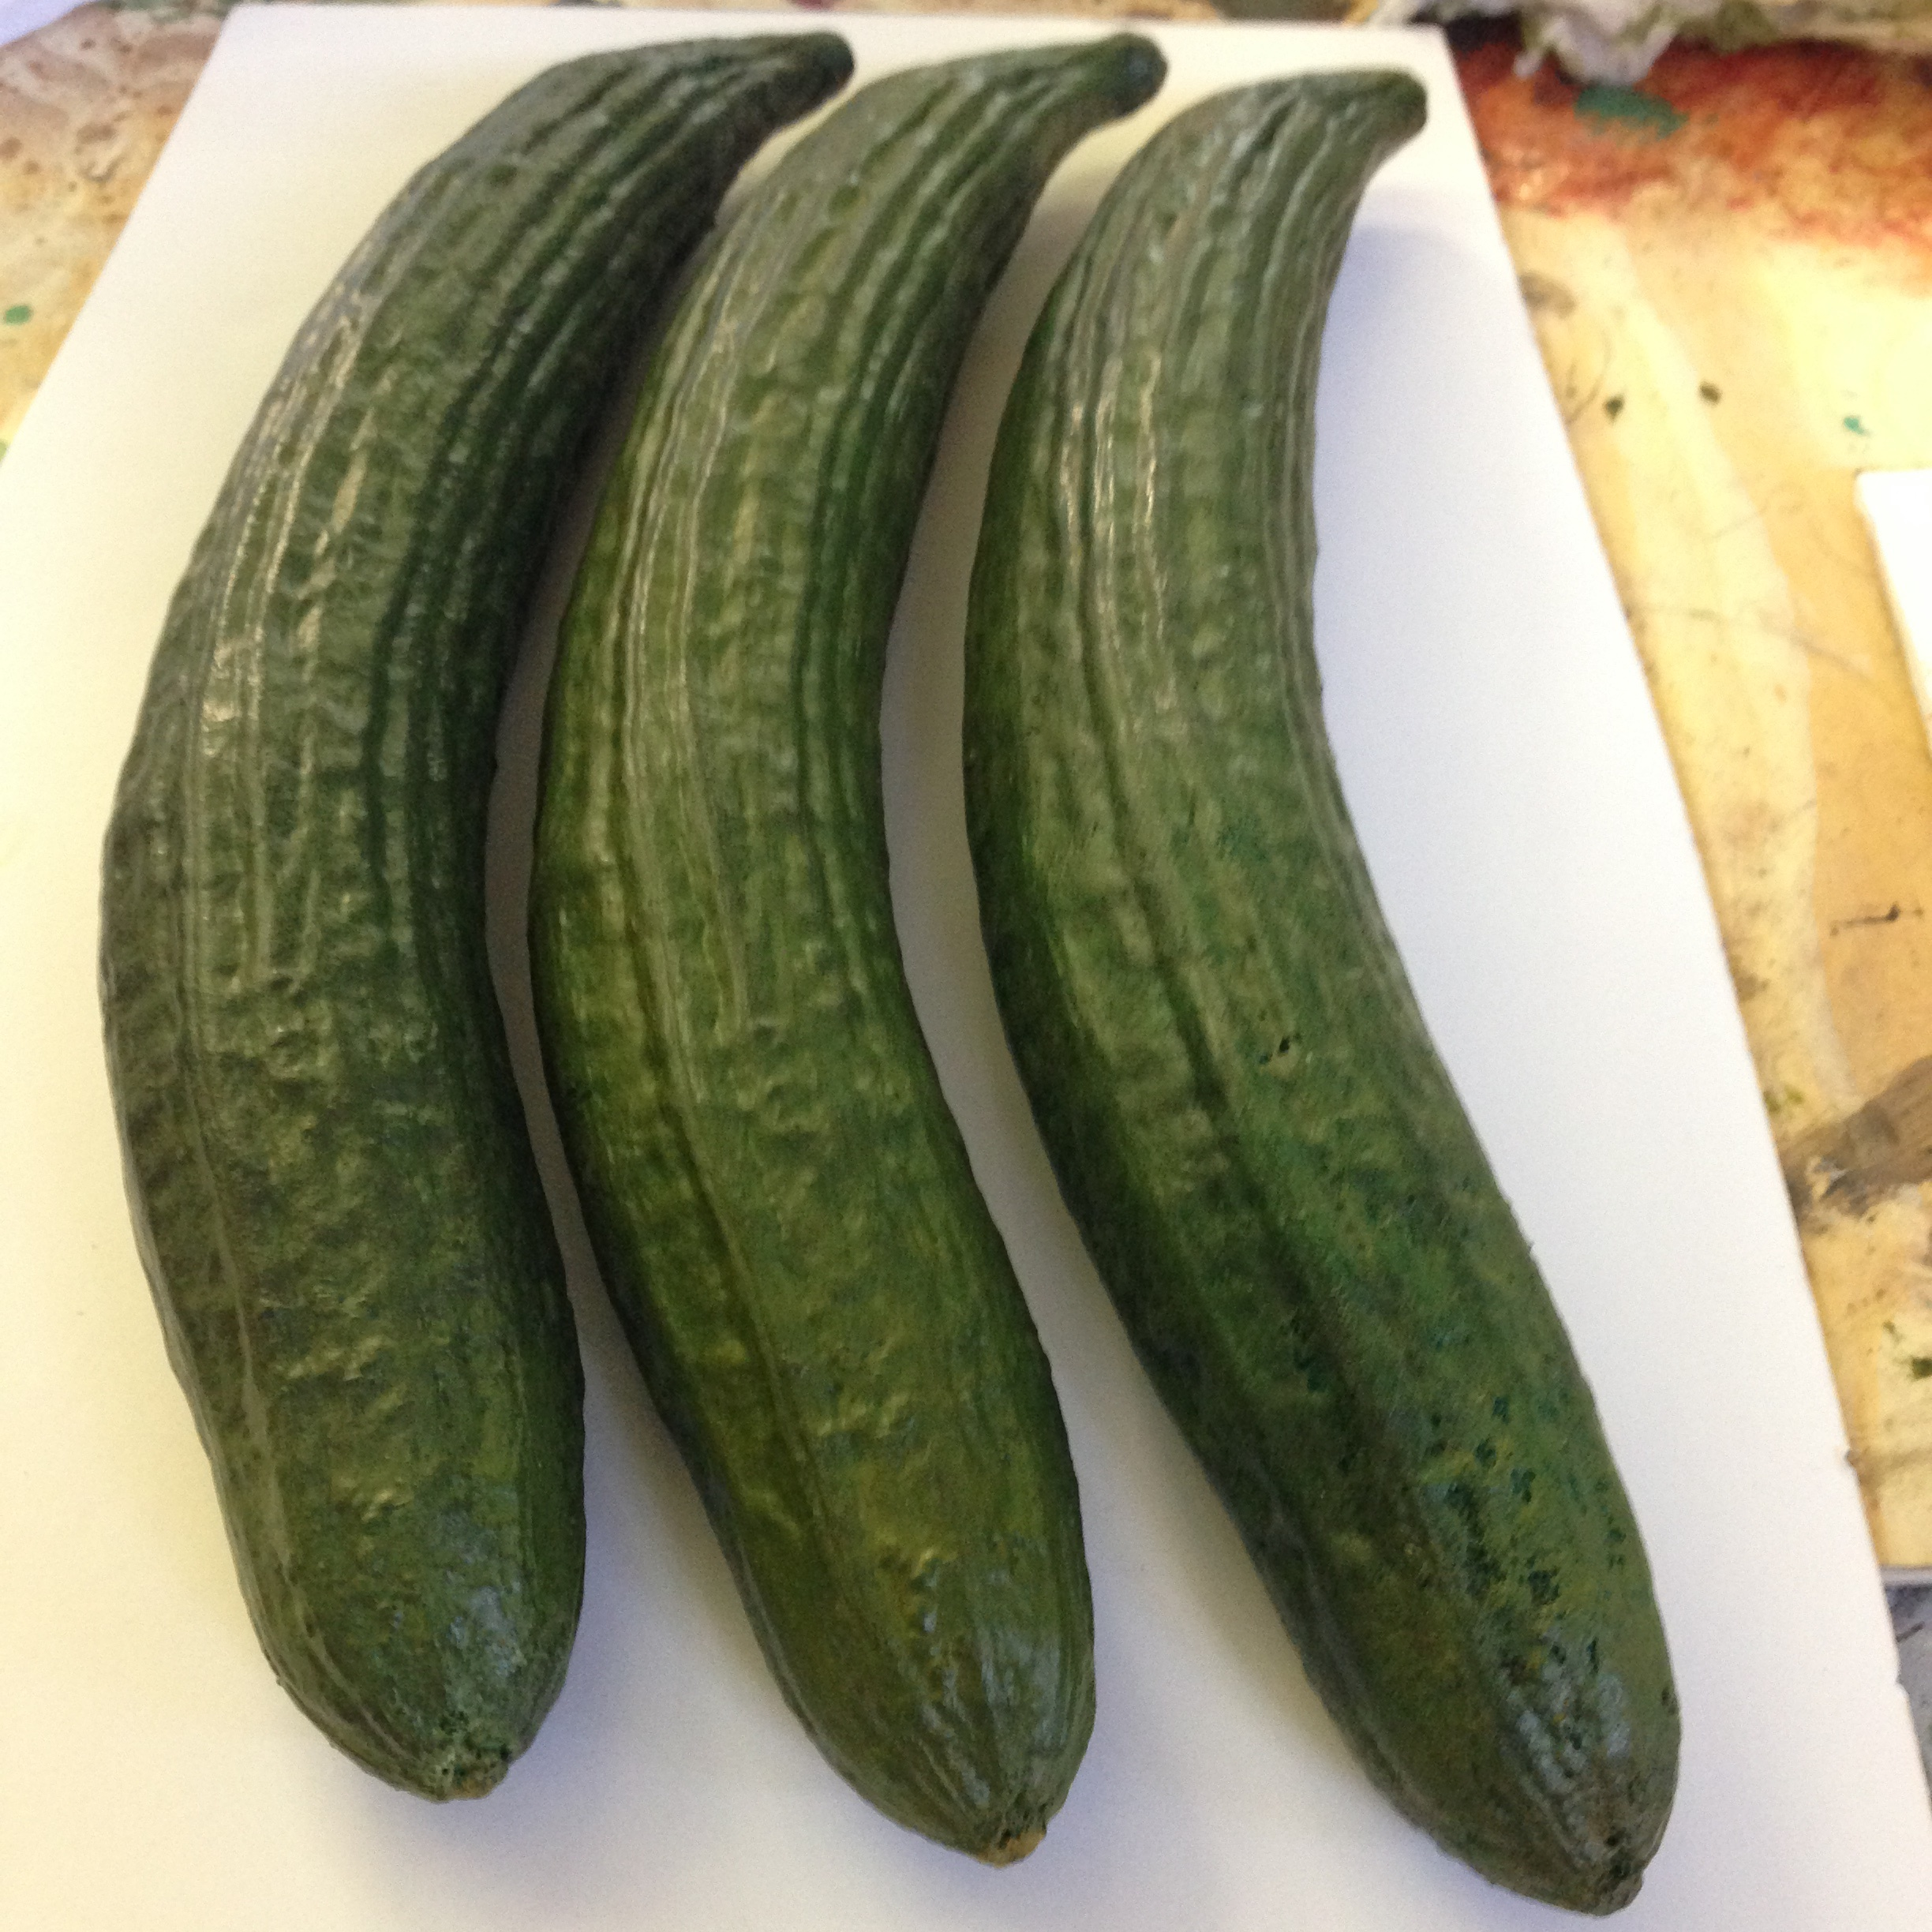 Fabricated cucumbers